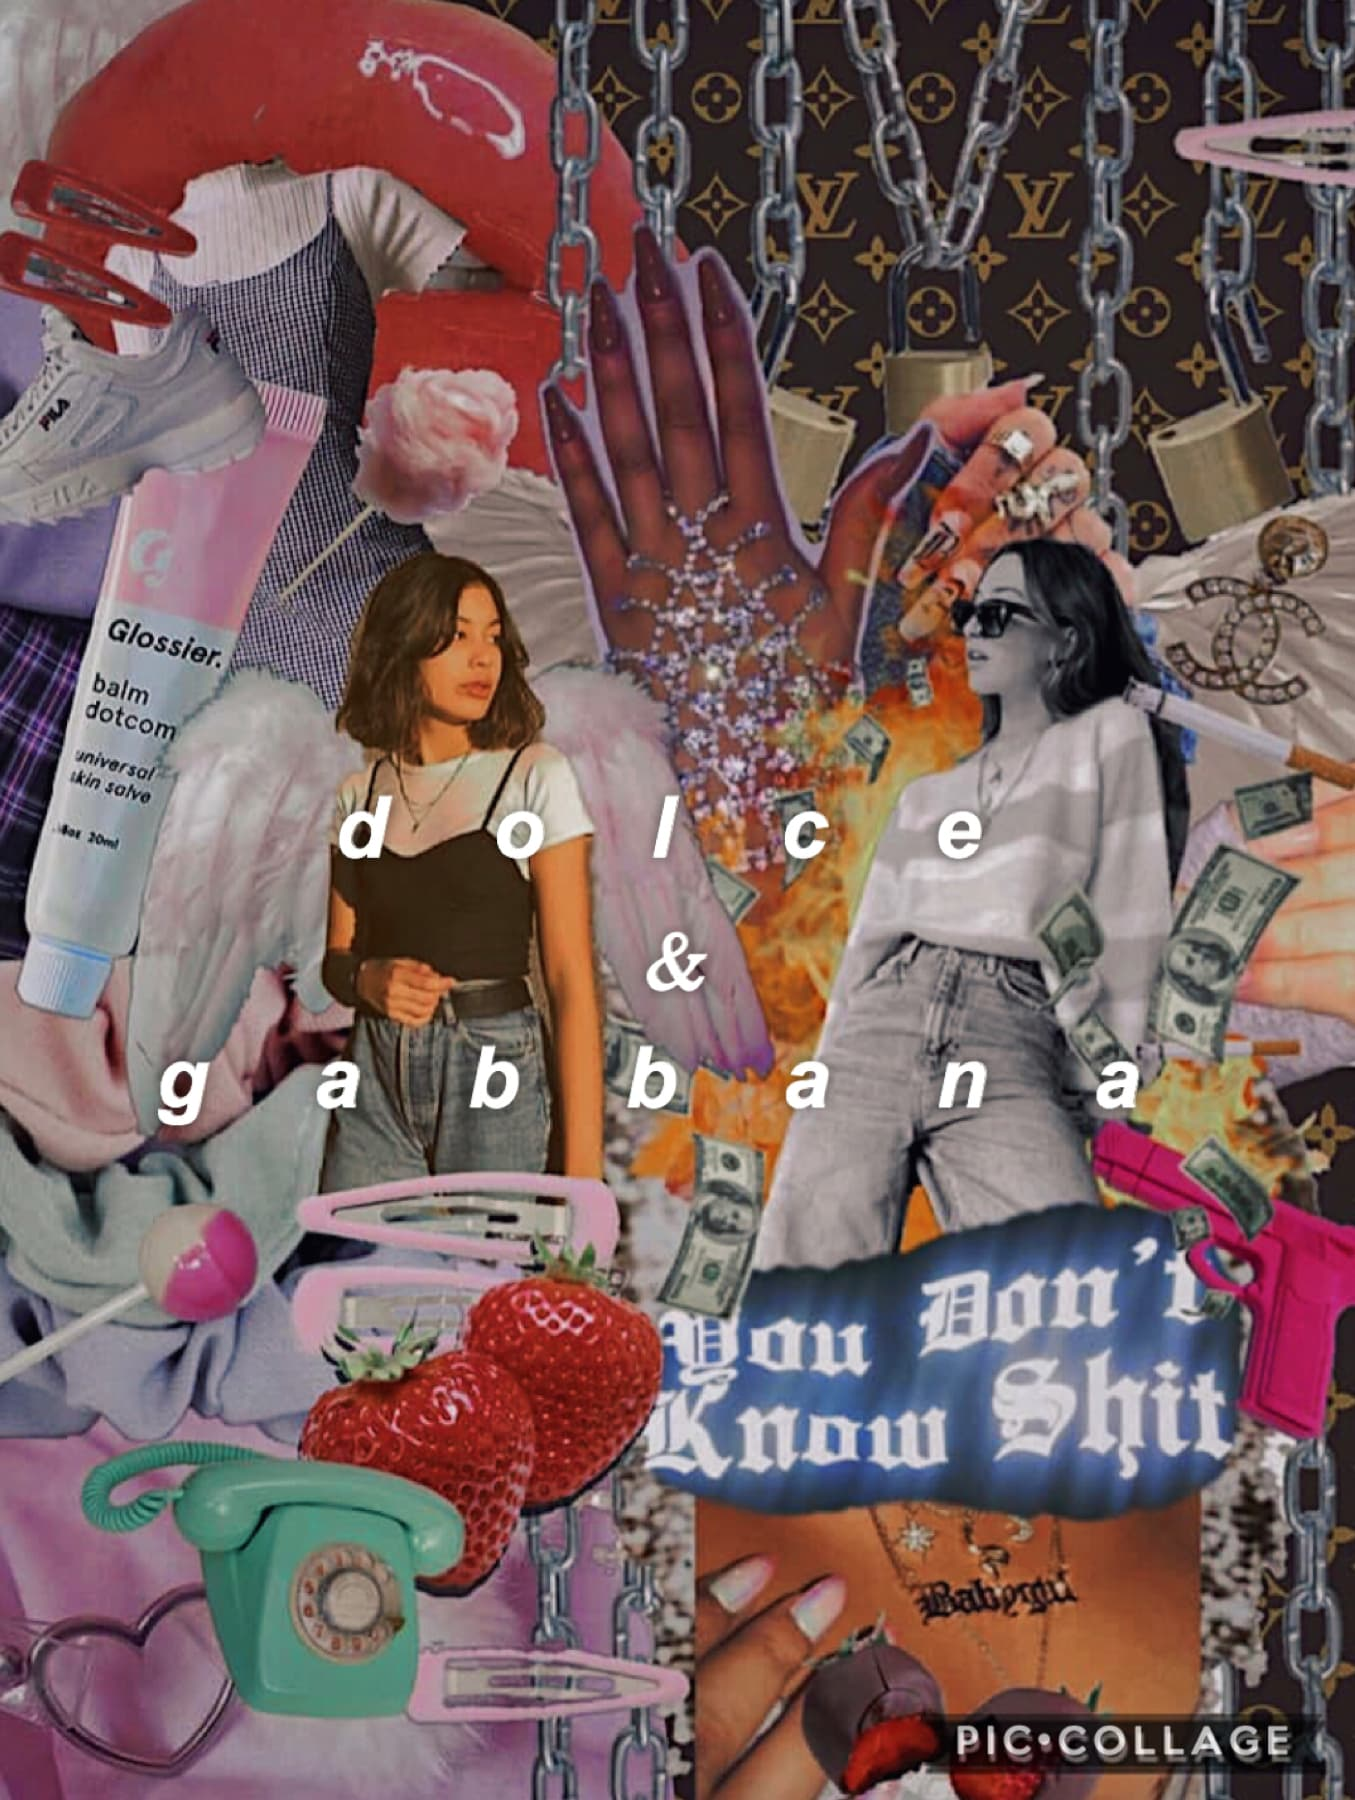 collab with....✨  *reposting bc i cant tell my right from left apparently*  my queen👑 my hotdog vendor🌭 my gabbana🥵 ✨@itssnyctophilia✨  she did the soft side on the LEFT which sLaps👏👏👏👏👏🥵  give my bb some love